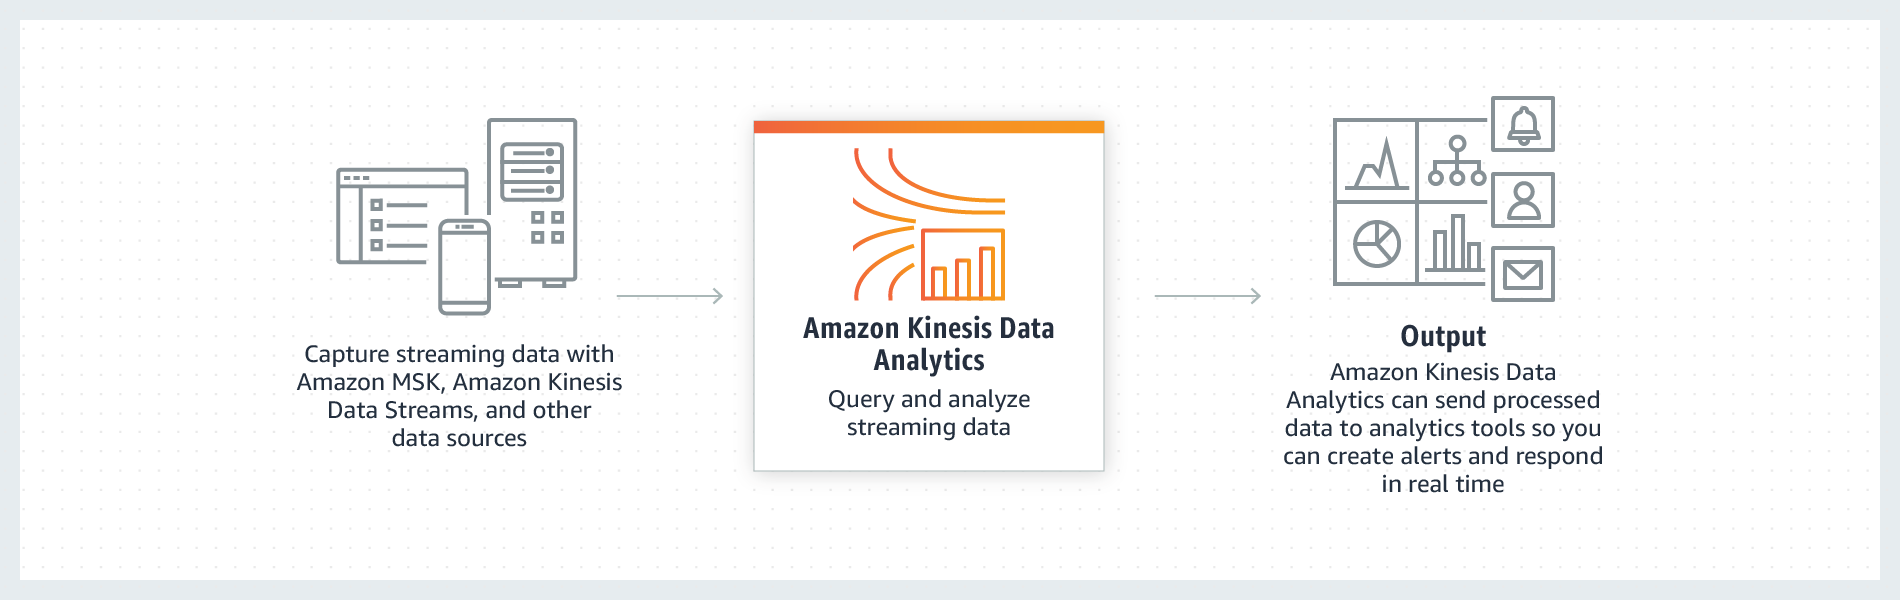 Fonctionnement d'Amazon Kinesis Data Analytics